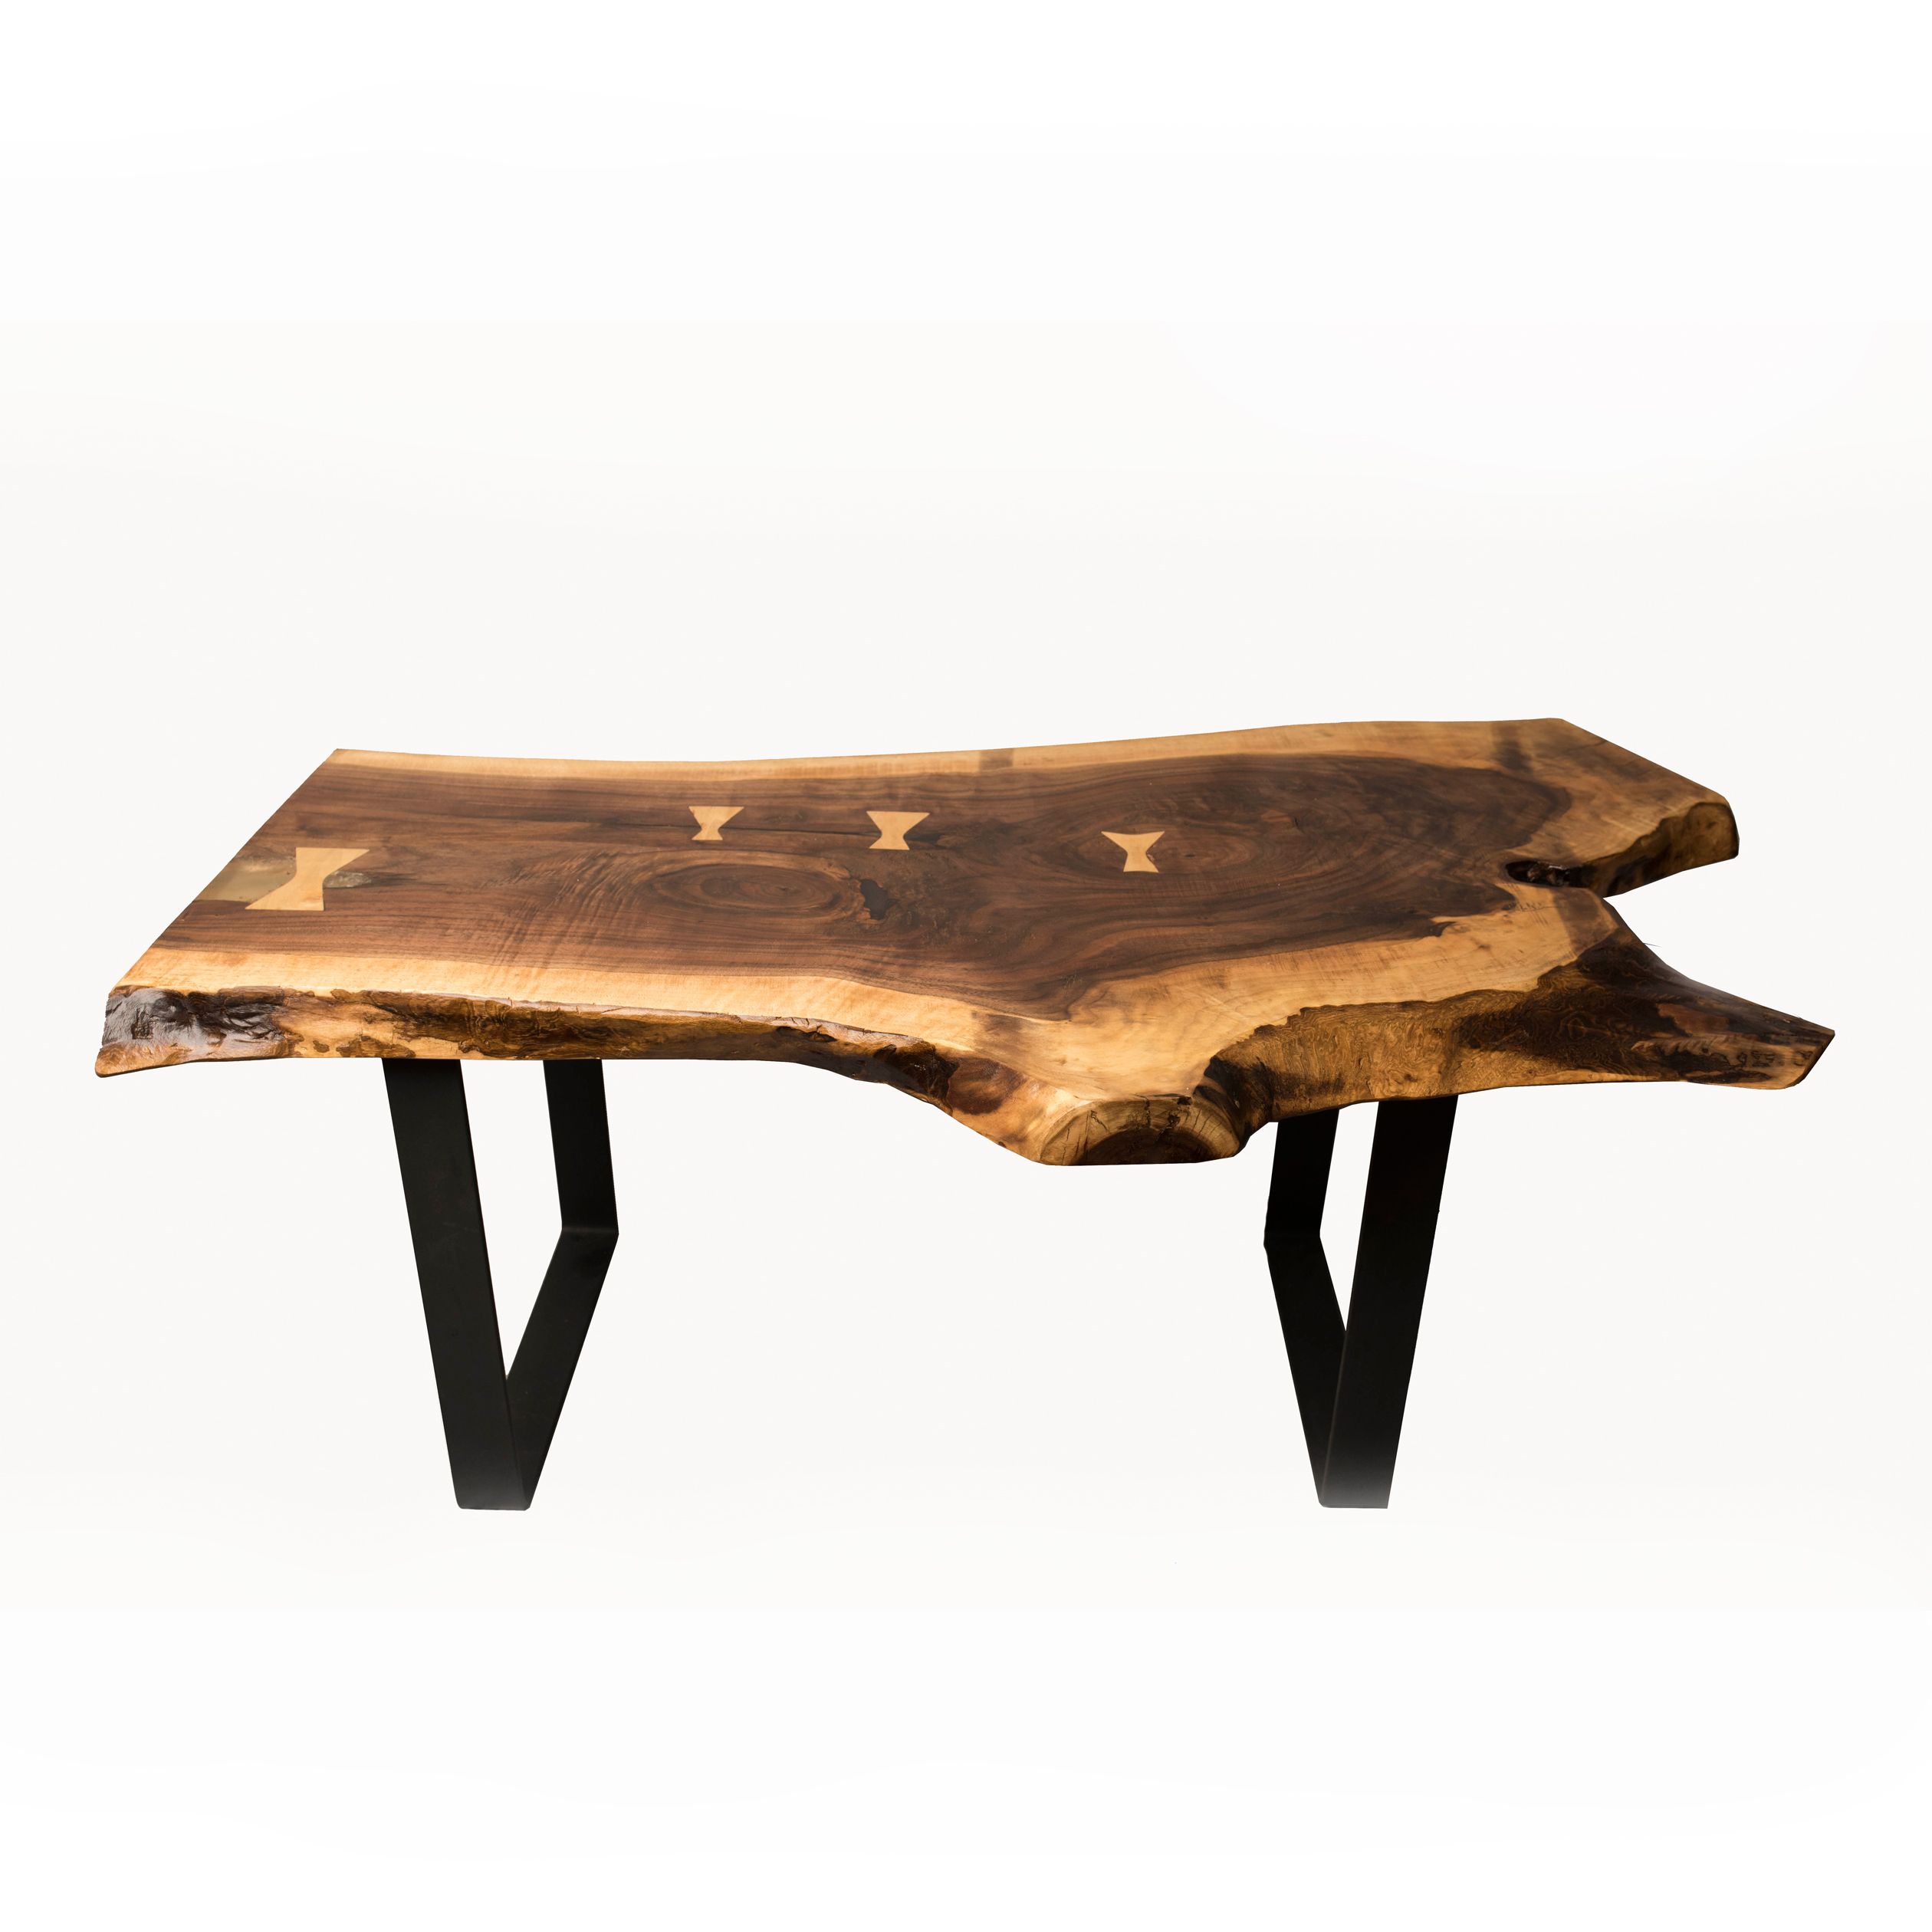 Live Edge Square Coffee Table: Walnut Live Edge Coffee Table